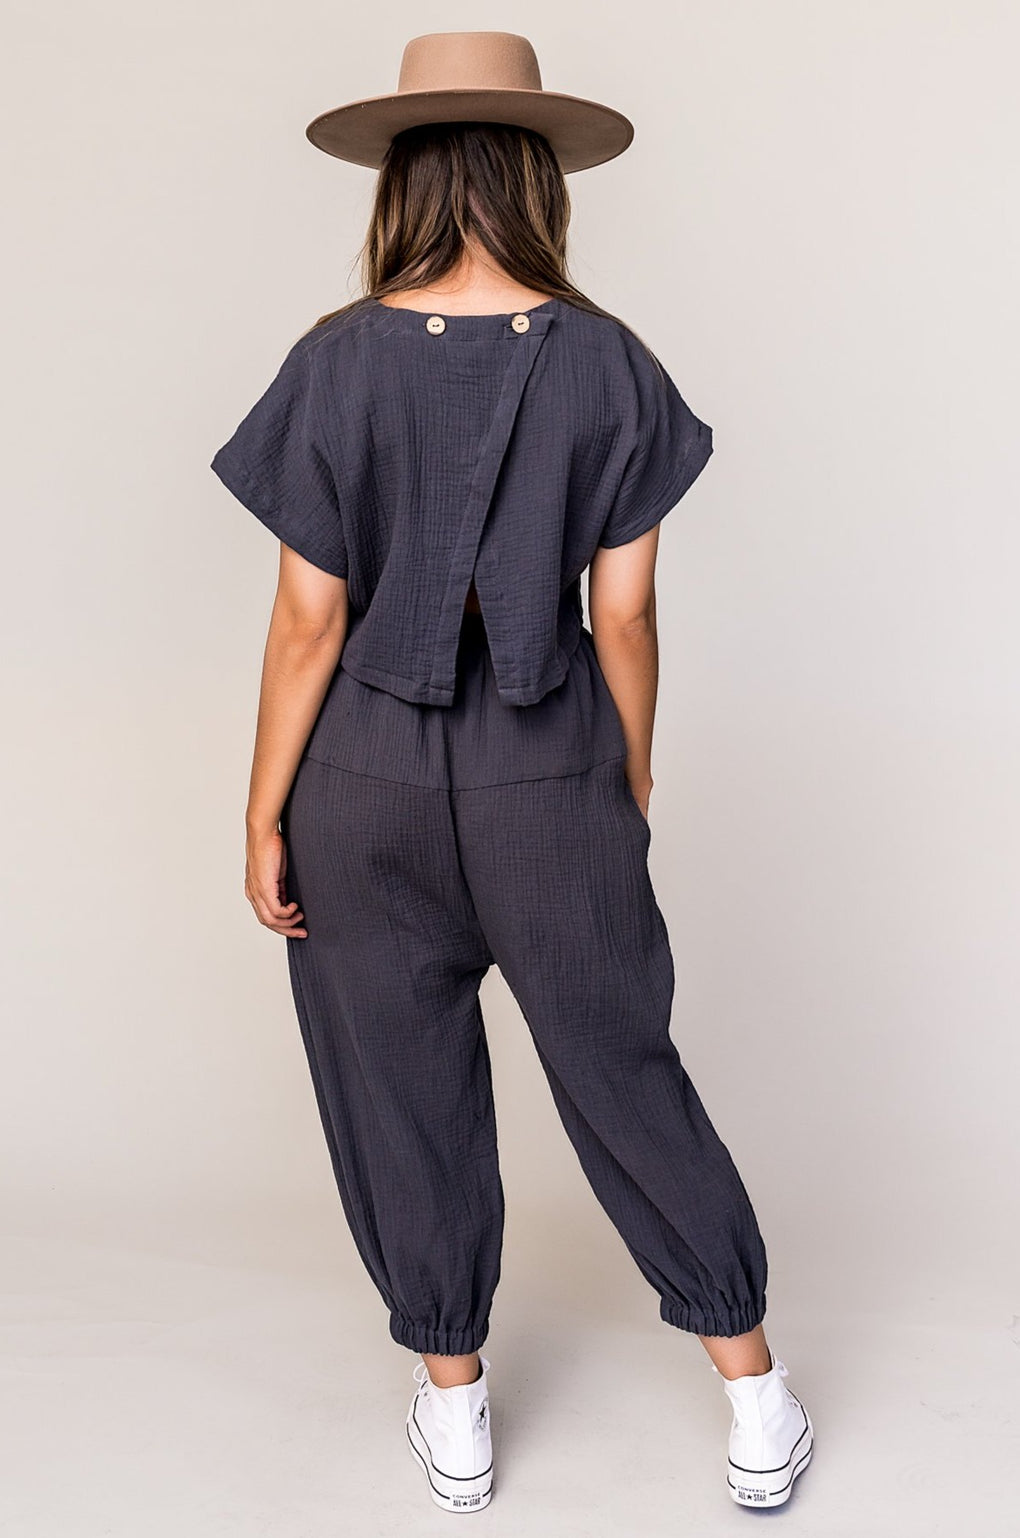 Major Crush Cutout Jumpsuit in Charcoal